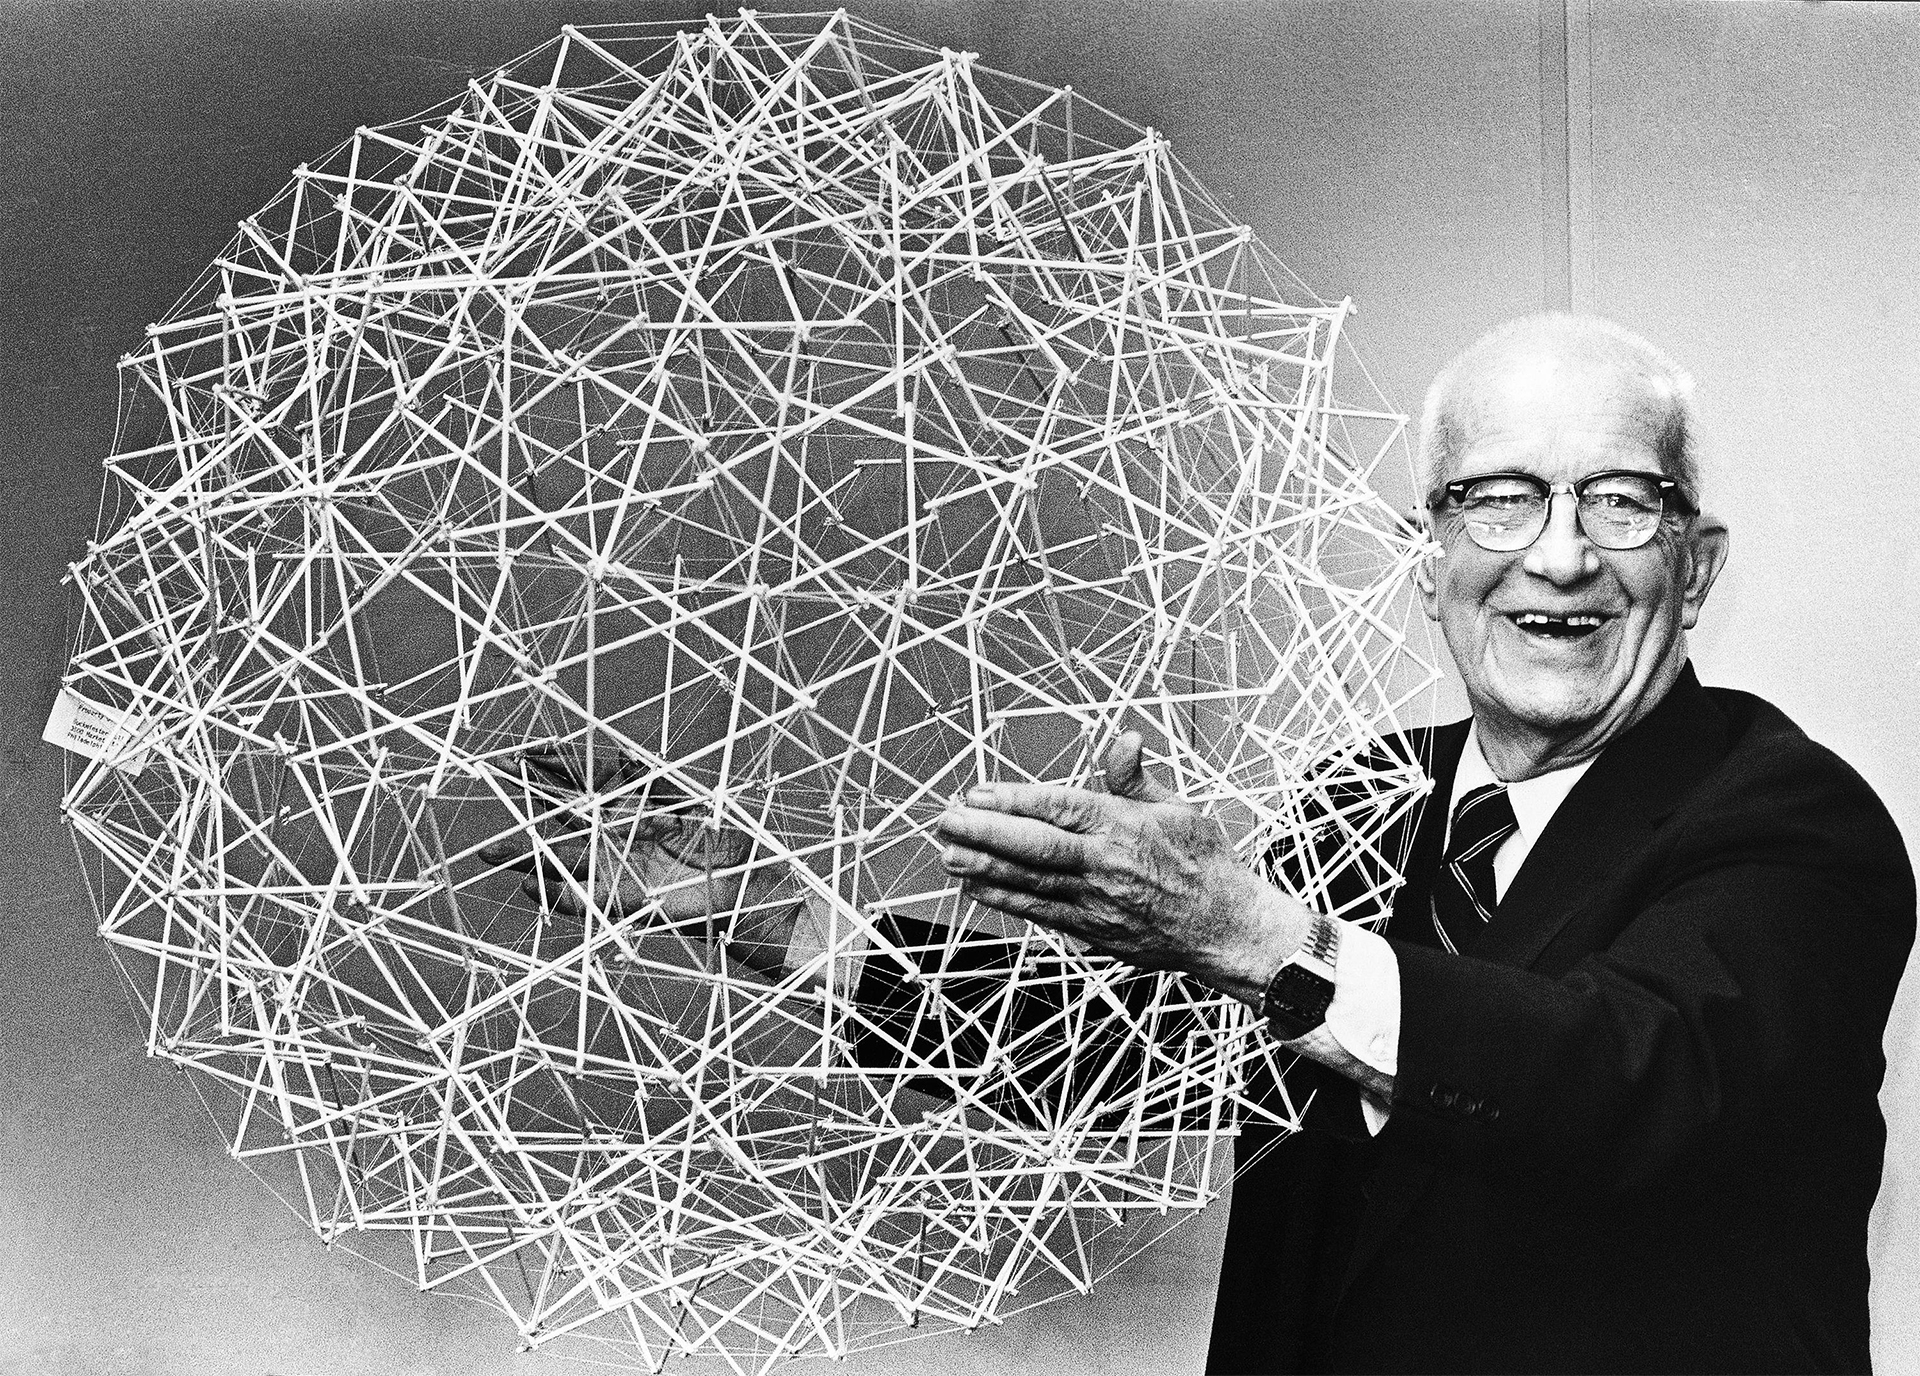 R. Buckminster Fuller holds up a Tensegrity sphere. 18th April, 1979.